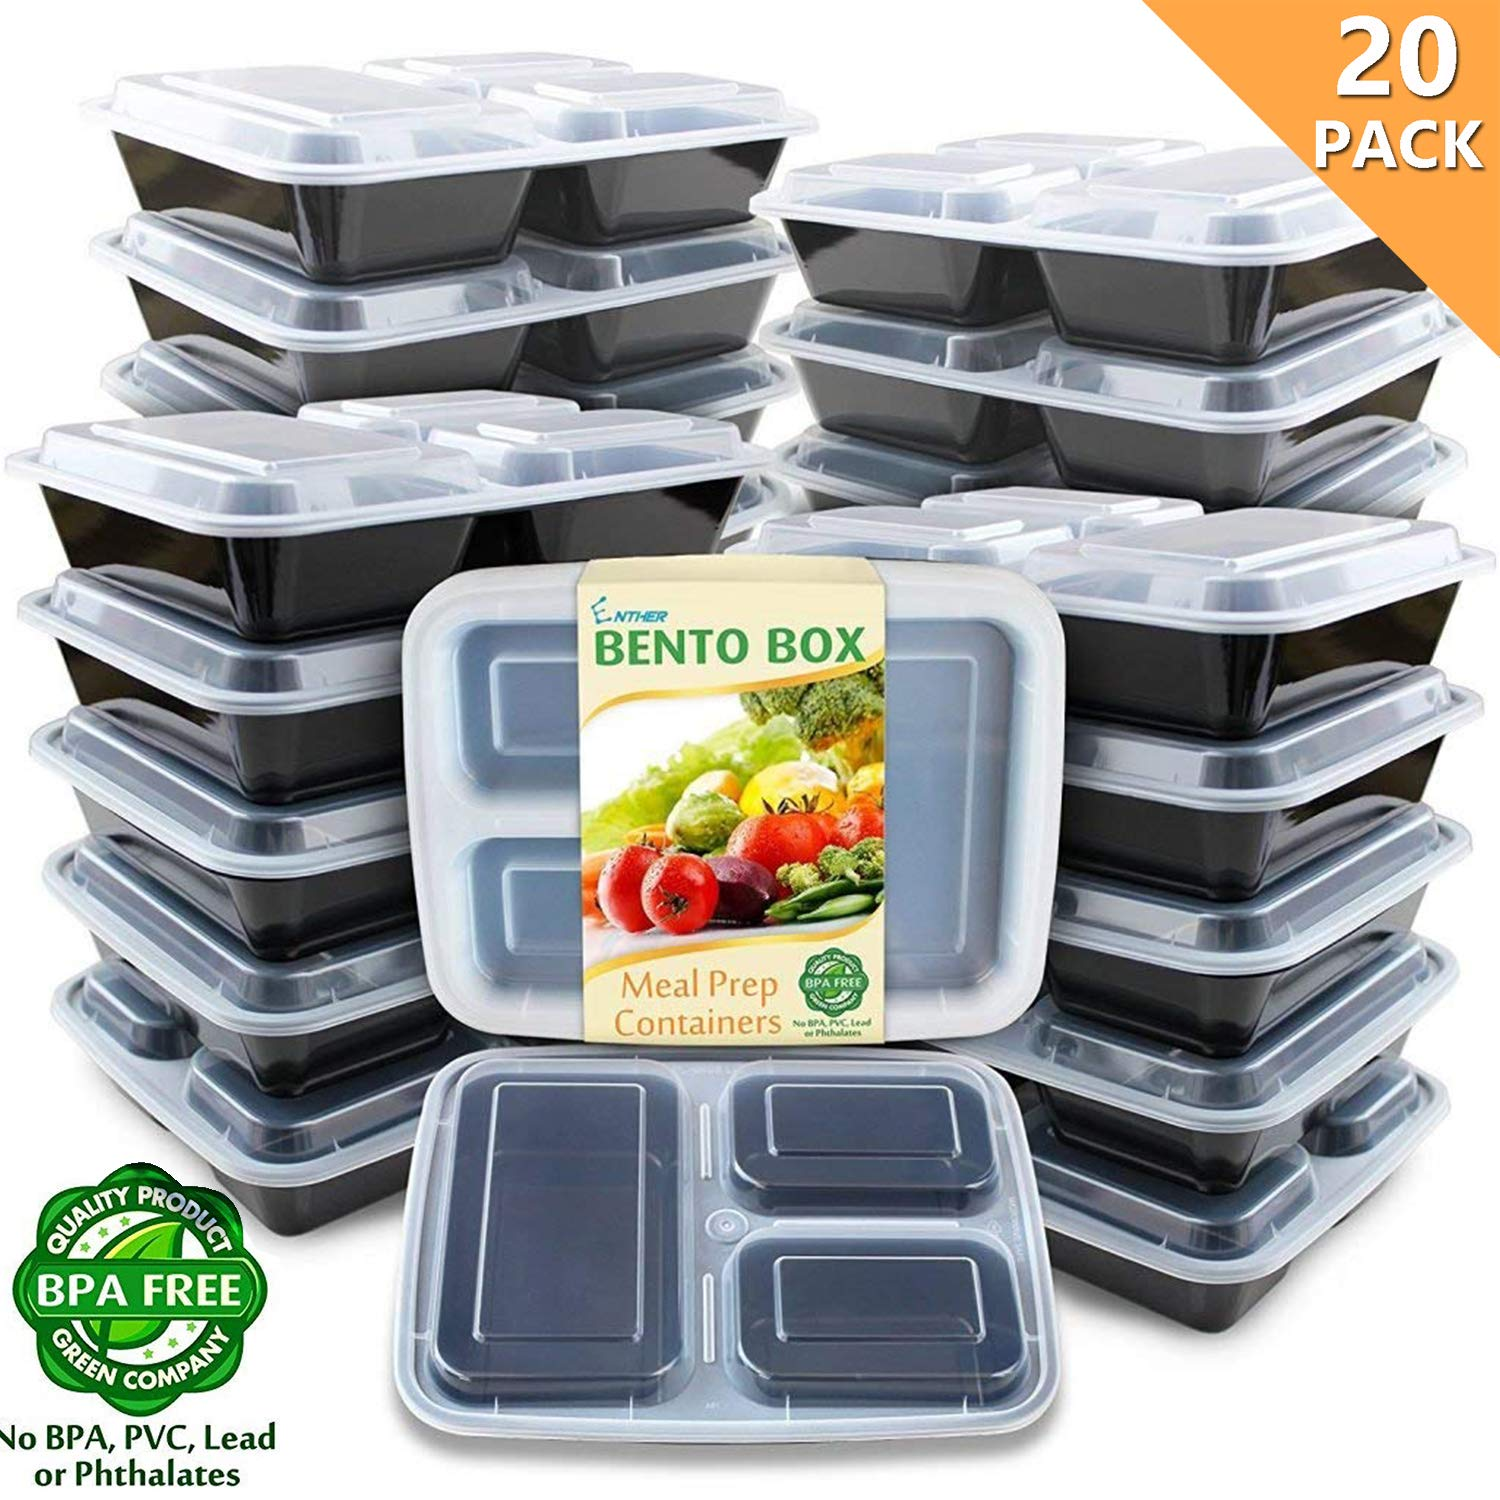 Enther Meal Prep Containers [20 Pack] 36oz 3 Compartment with Lids, Food Storage Bento Box BPA Free/Reusable/Stackable Lunch Planning, Microwave/Freezer/Dishwasher Safe, Portion Control by Enther